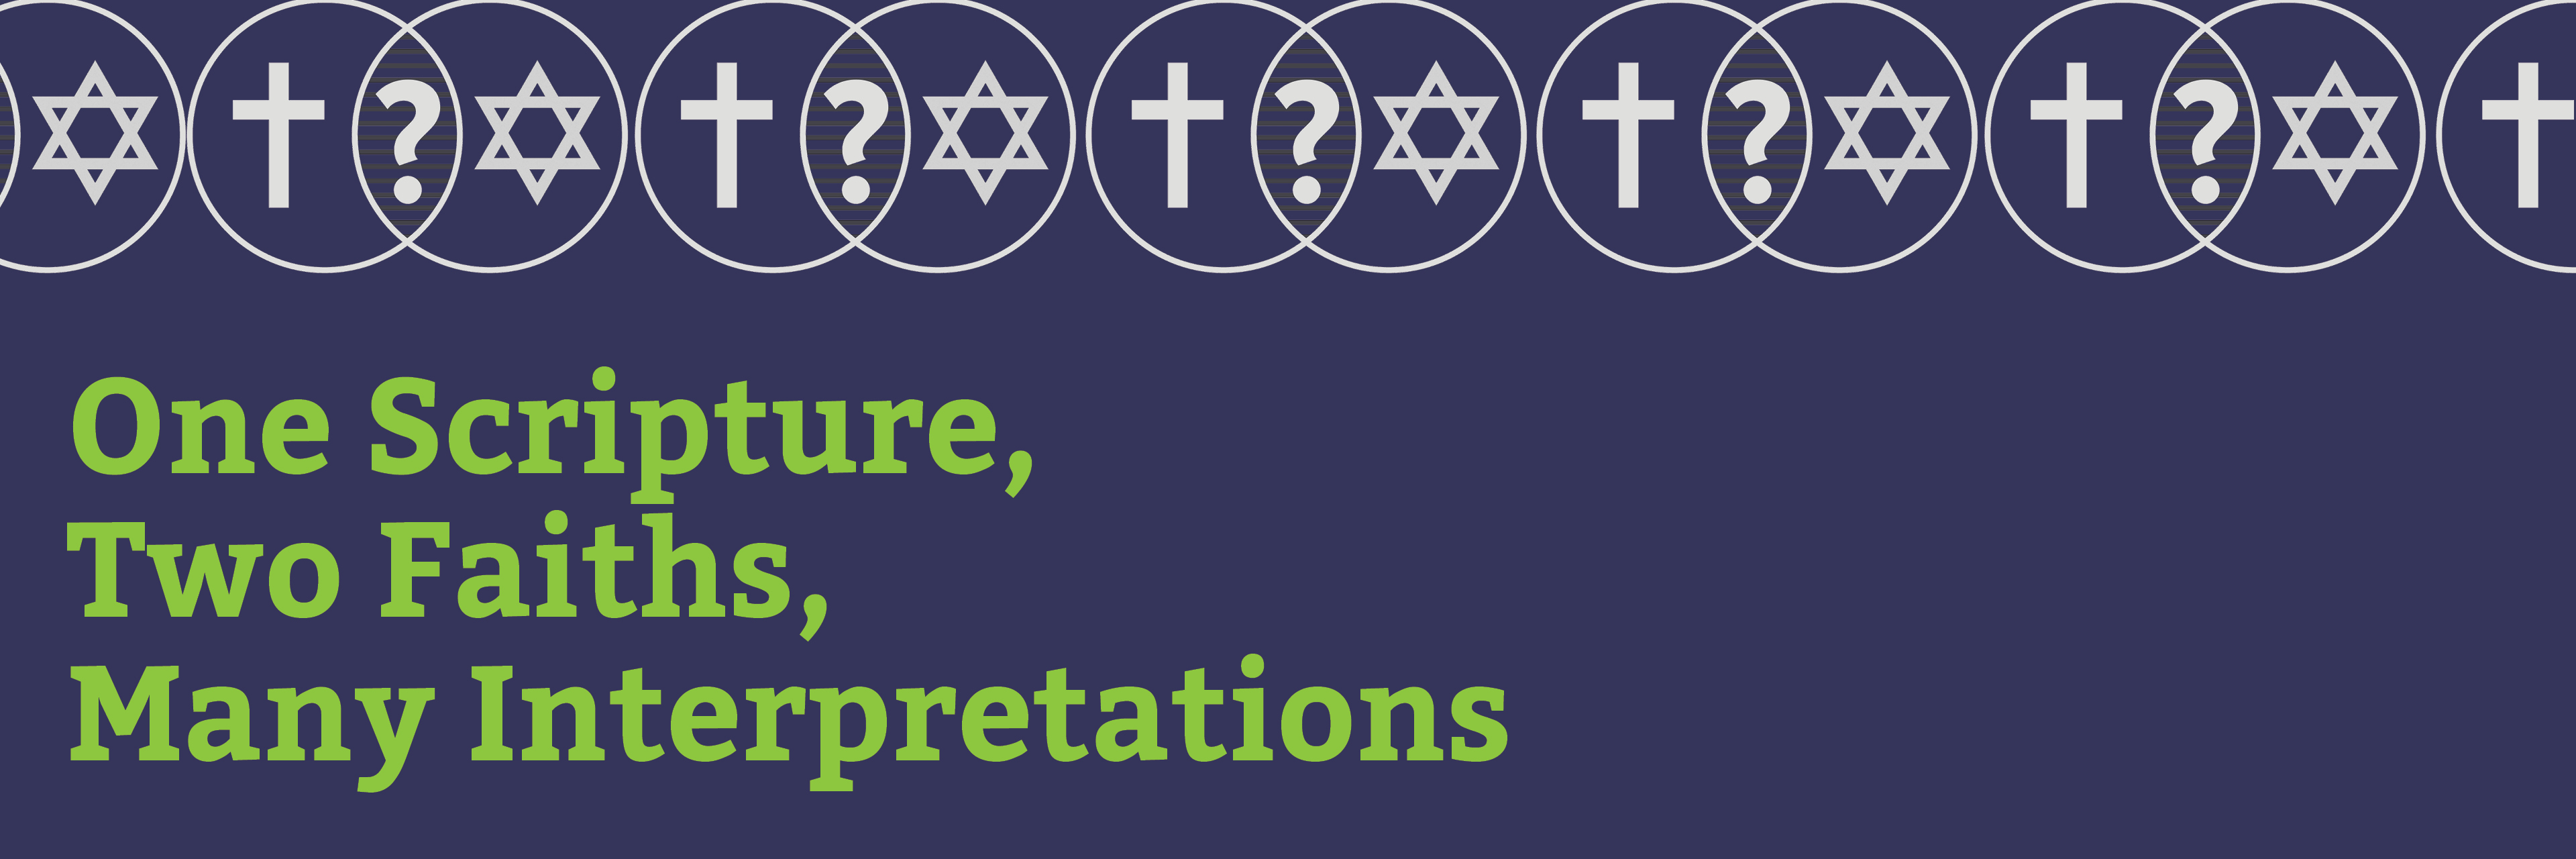 "<a href=""https://www.congkti.org/event/one-scripture-two-faiths-many-interpretations.html""